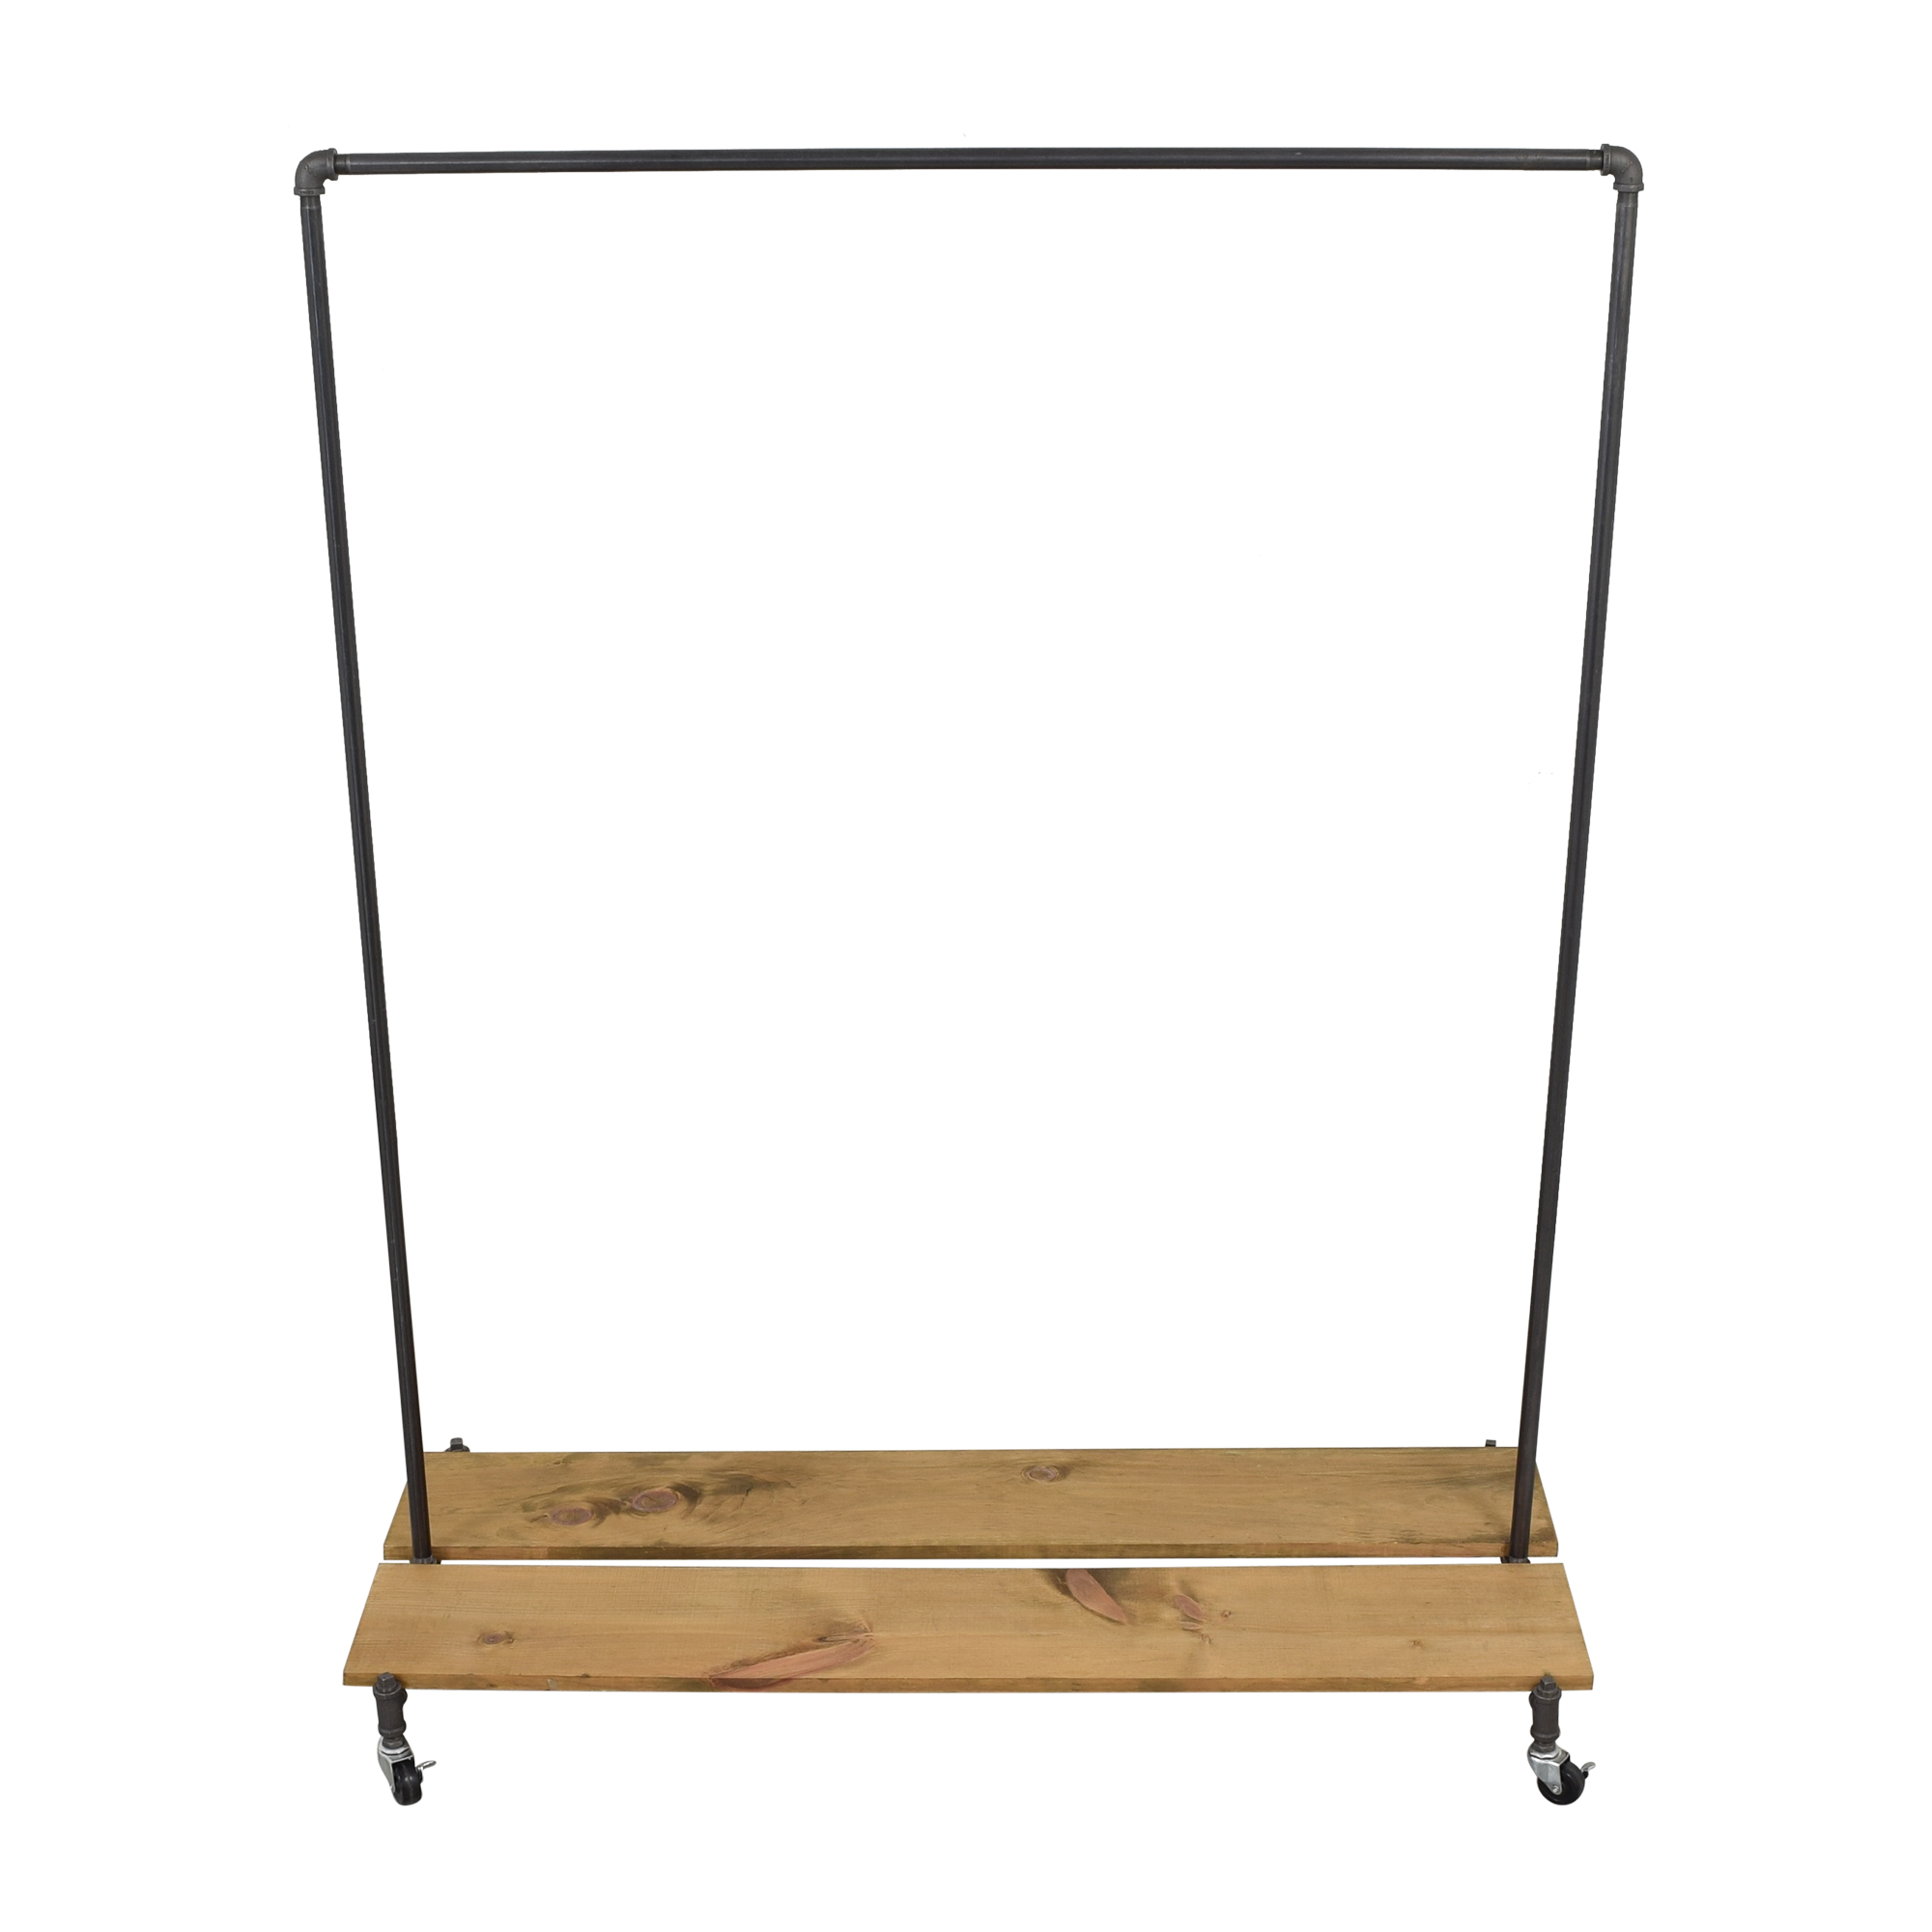 Monroe Trades Clothing Rack / Decorative Accents